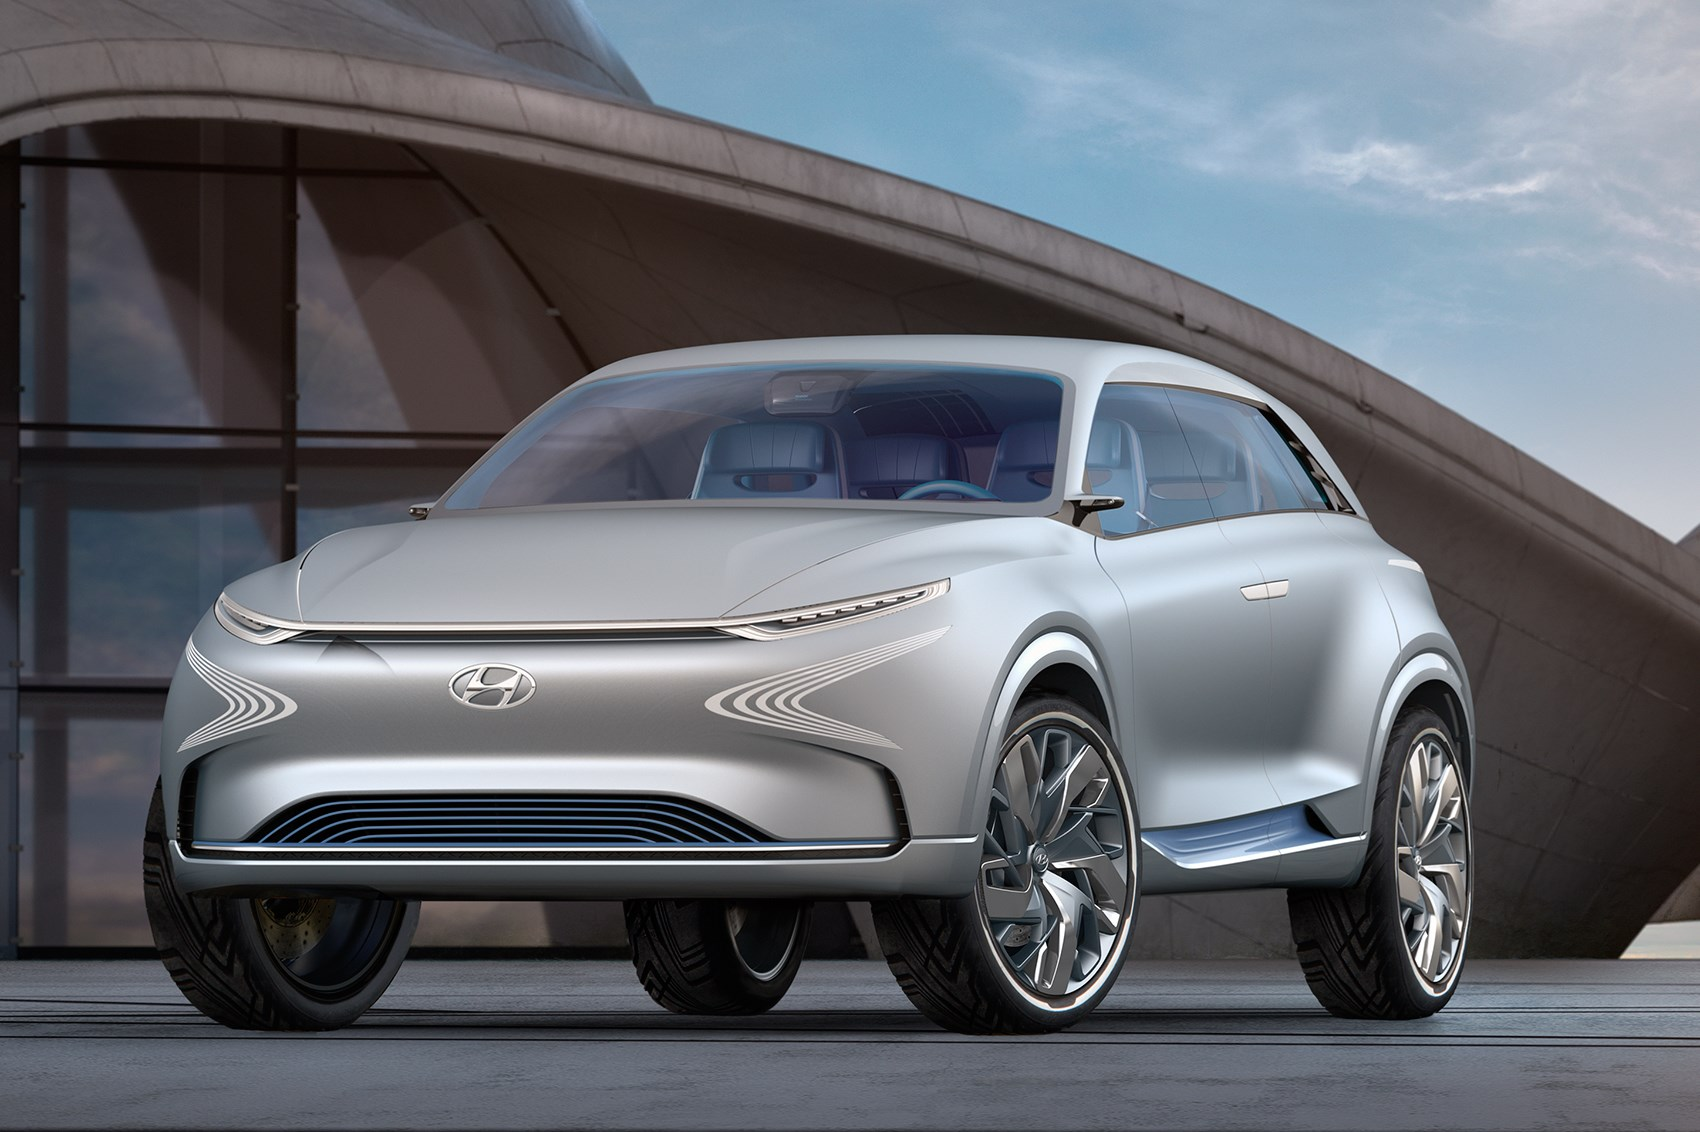 Hyundai FE Fuel Cell Concept has near 500-mile range